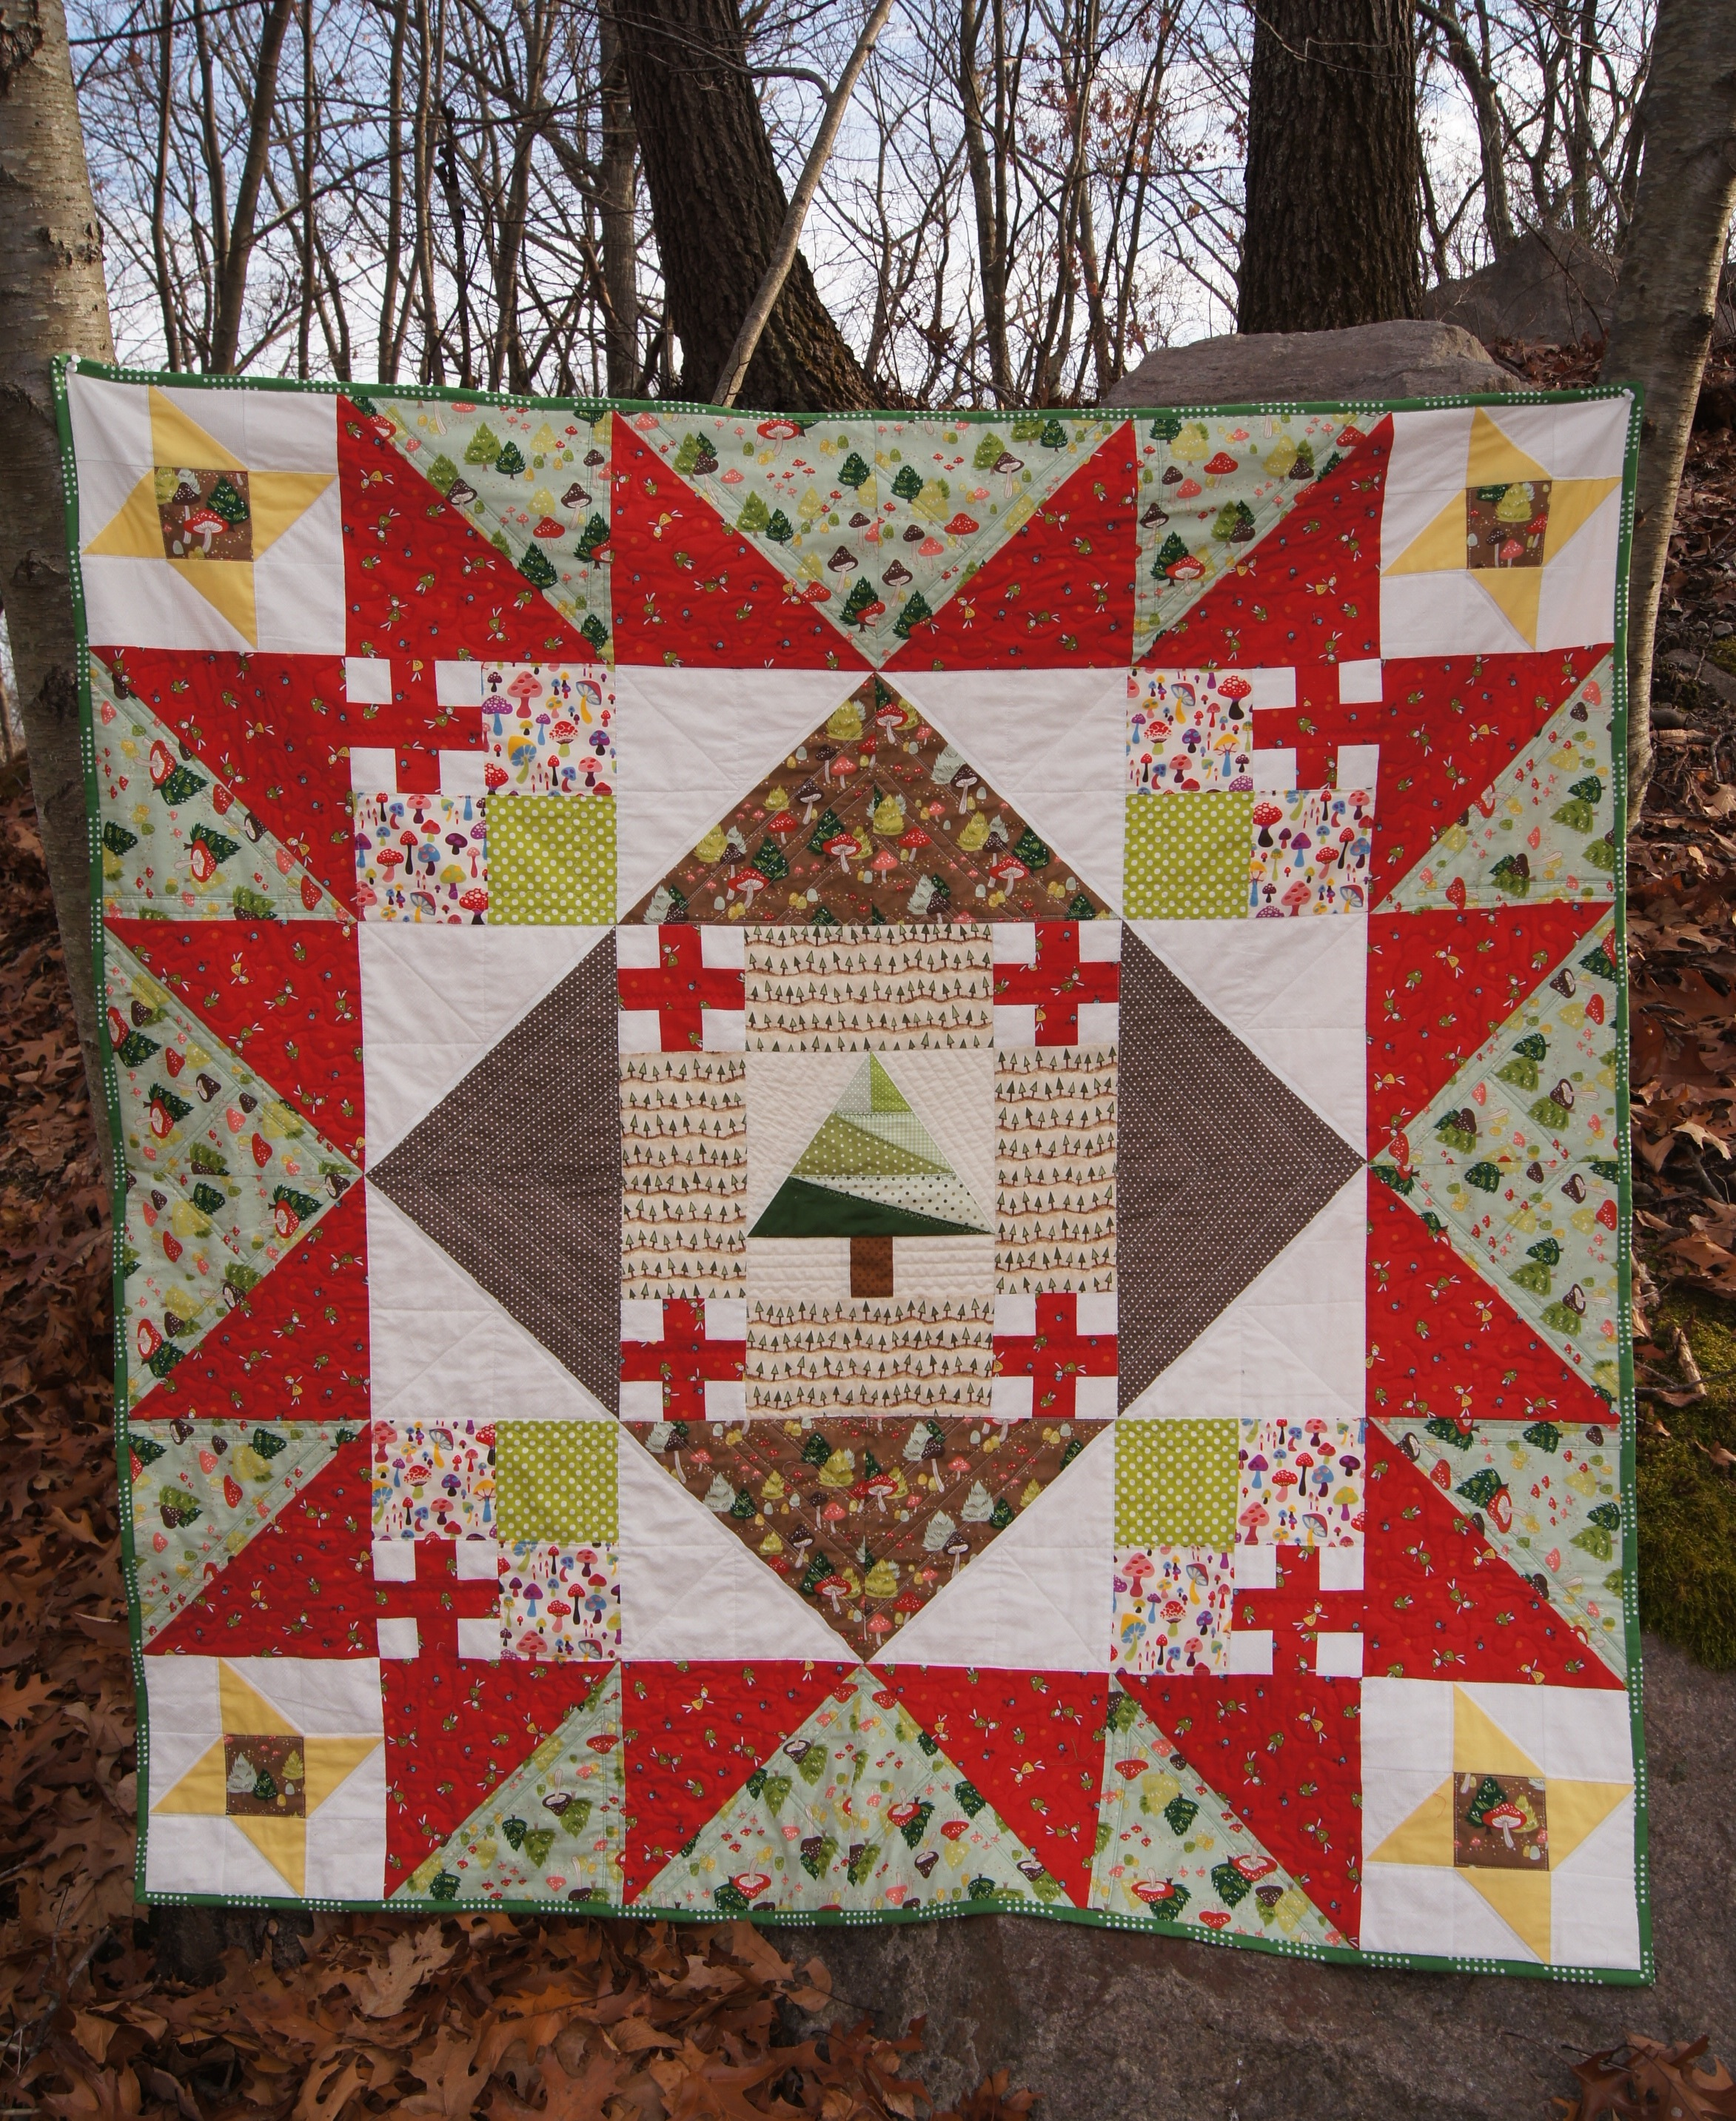 Christmas Woodlands lap quilt  52 1/2 x 52 1/2 inches